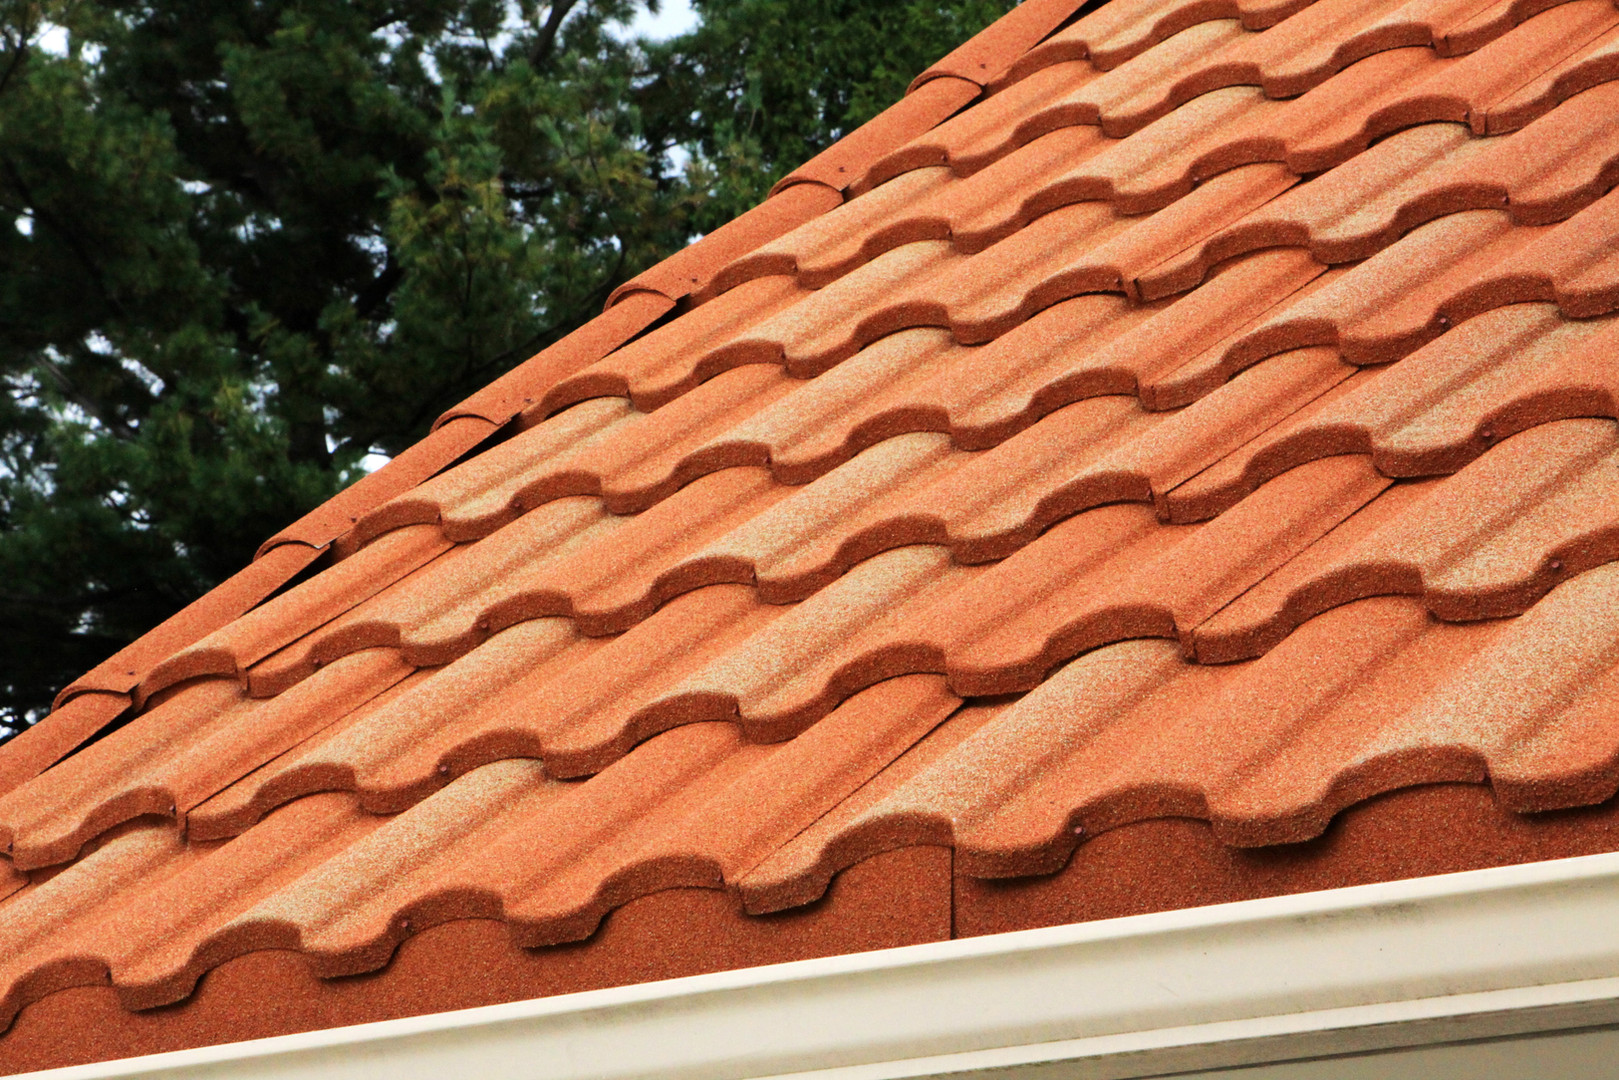 tilcor-antica-textured-metal-roof-tile.j